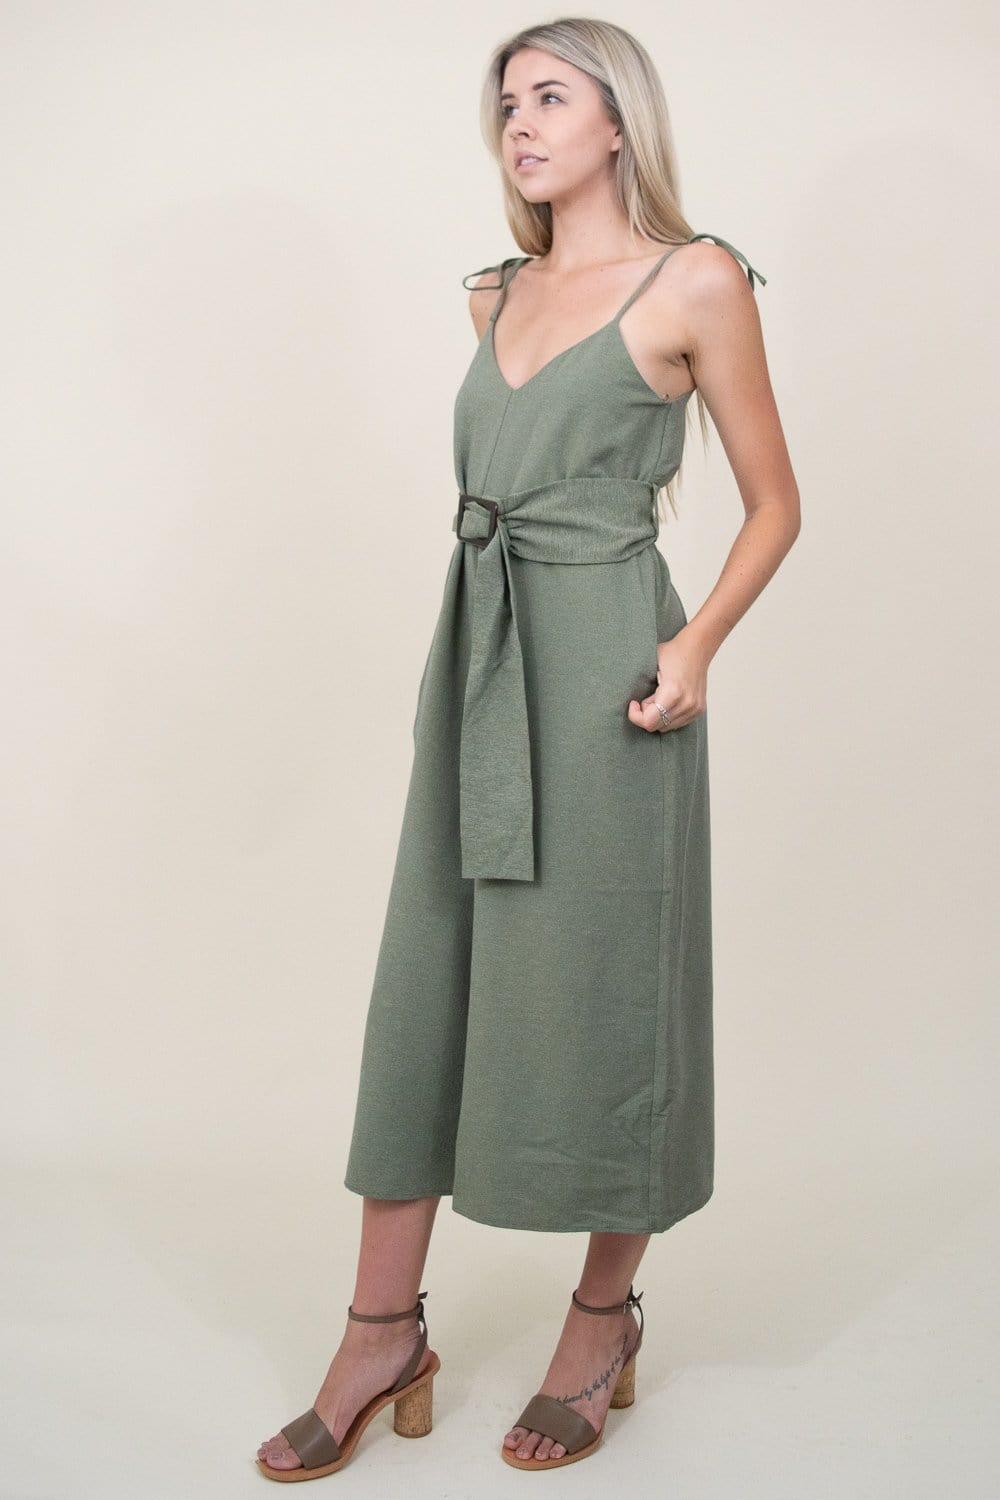 Moon River Spaghetti Strap Jumpsuit W/ Waist Belt in Hunter Green | Wild Dove Boutique | San Diego,CA